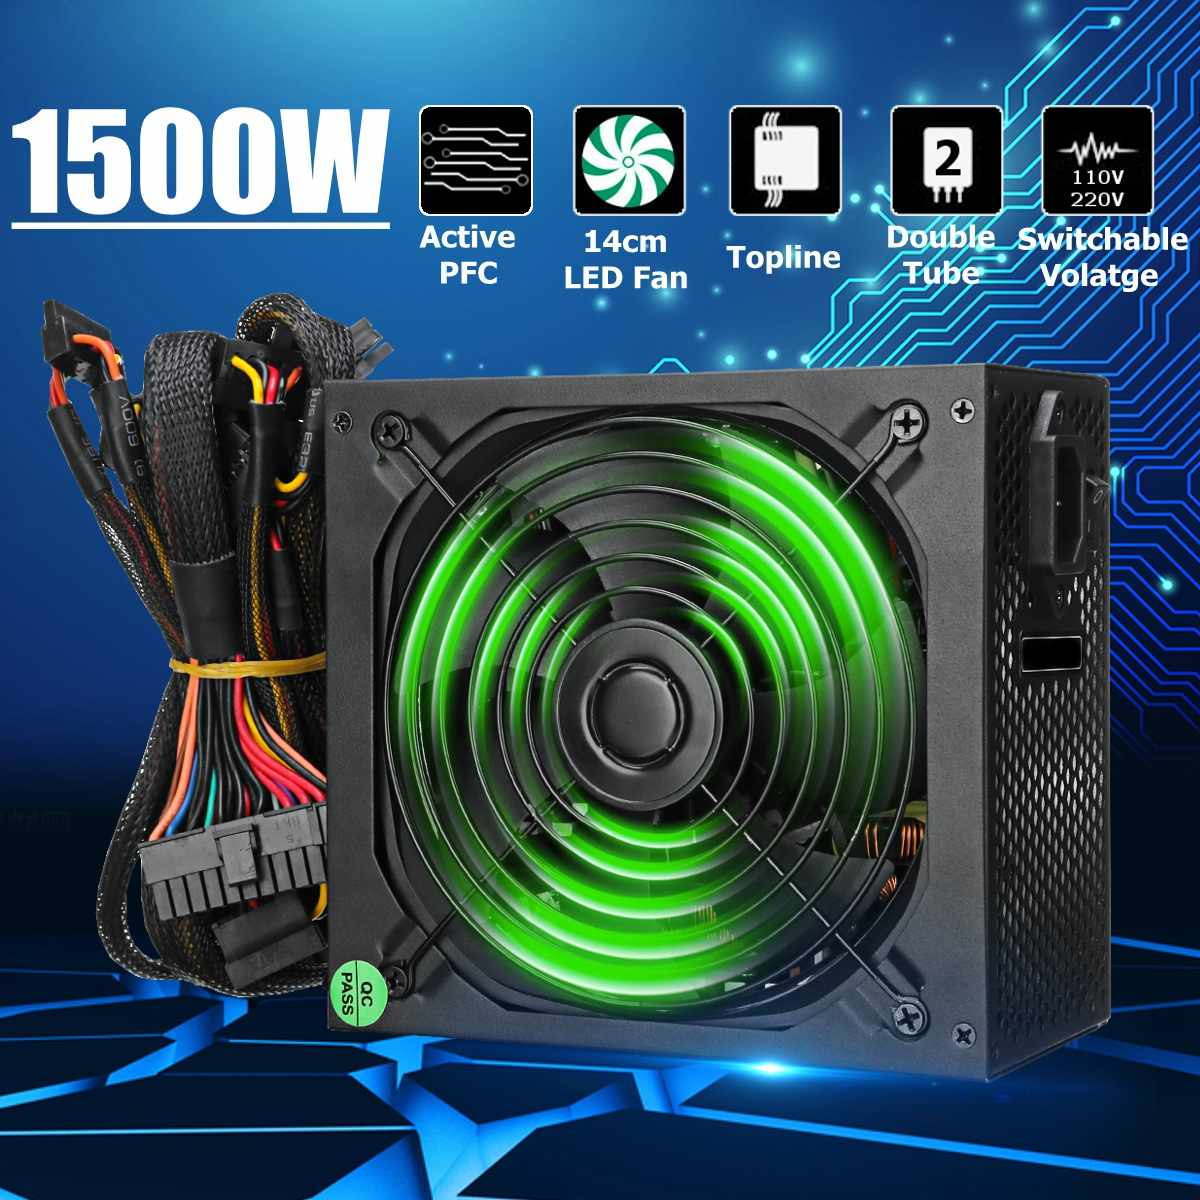 LEORY 1500W PC PSU Power Supply Active PFC 24Pin SATA LED hydraulic 140mm Fan 80 Plus computer Power Supply For BTC(China)